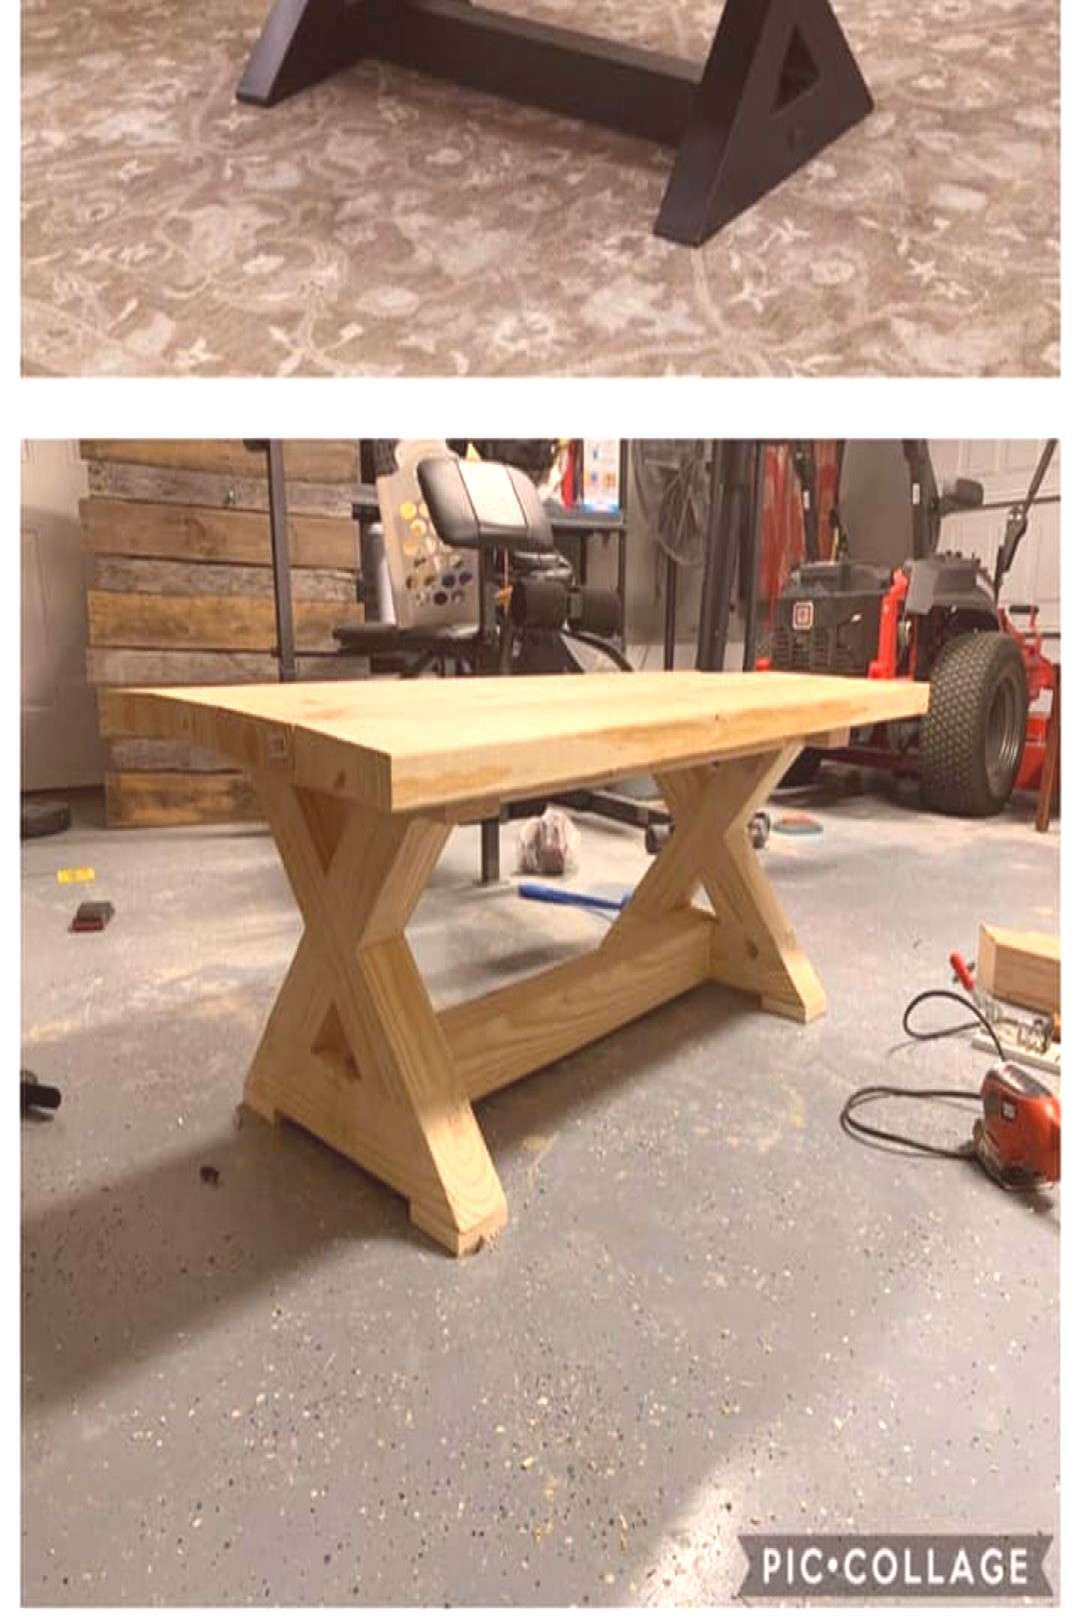 #throwback #projects #sitting #people #first #these #some #most #the #big #did #to #of #i Throwback to some of the first big projects I did! Most of these You can find Kids table and more on our website.Throwback to some of t...